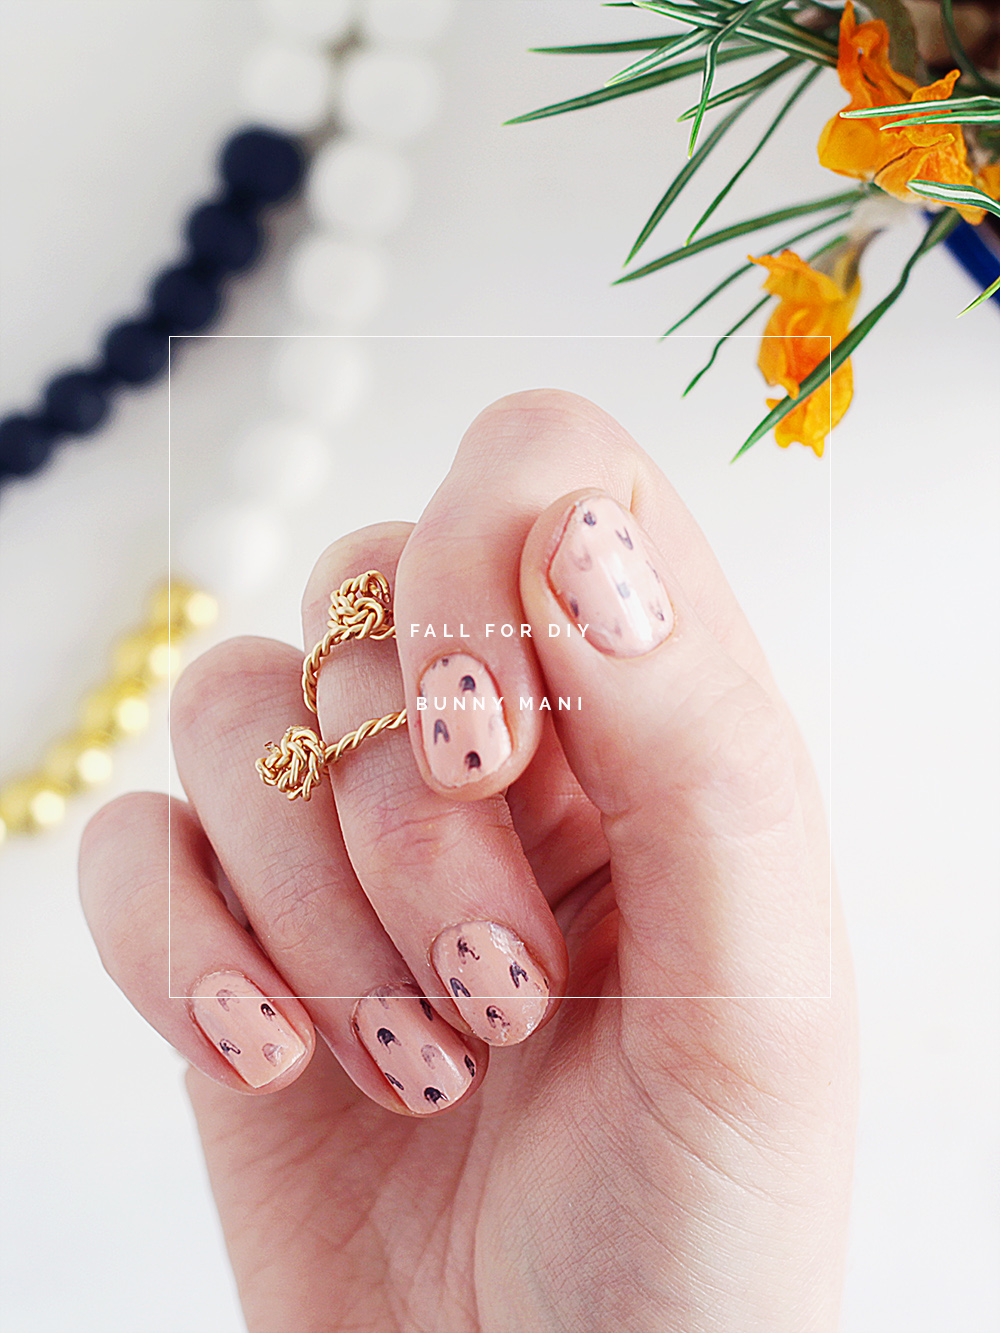 Fall For DIY Bunny Mani